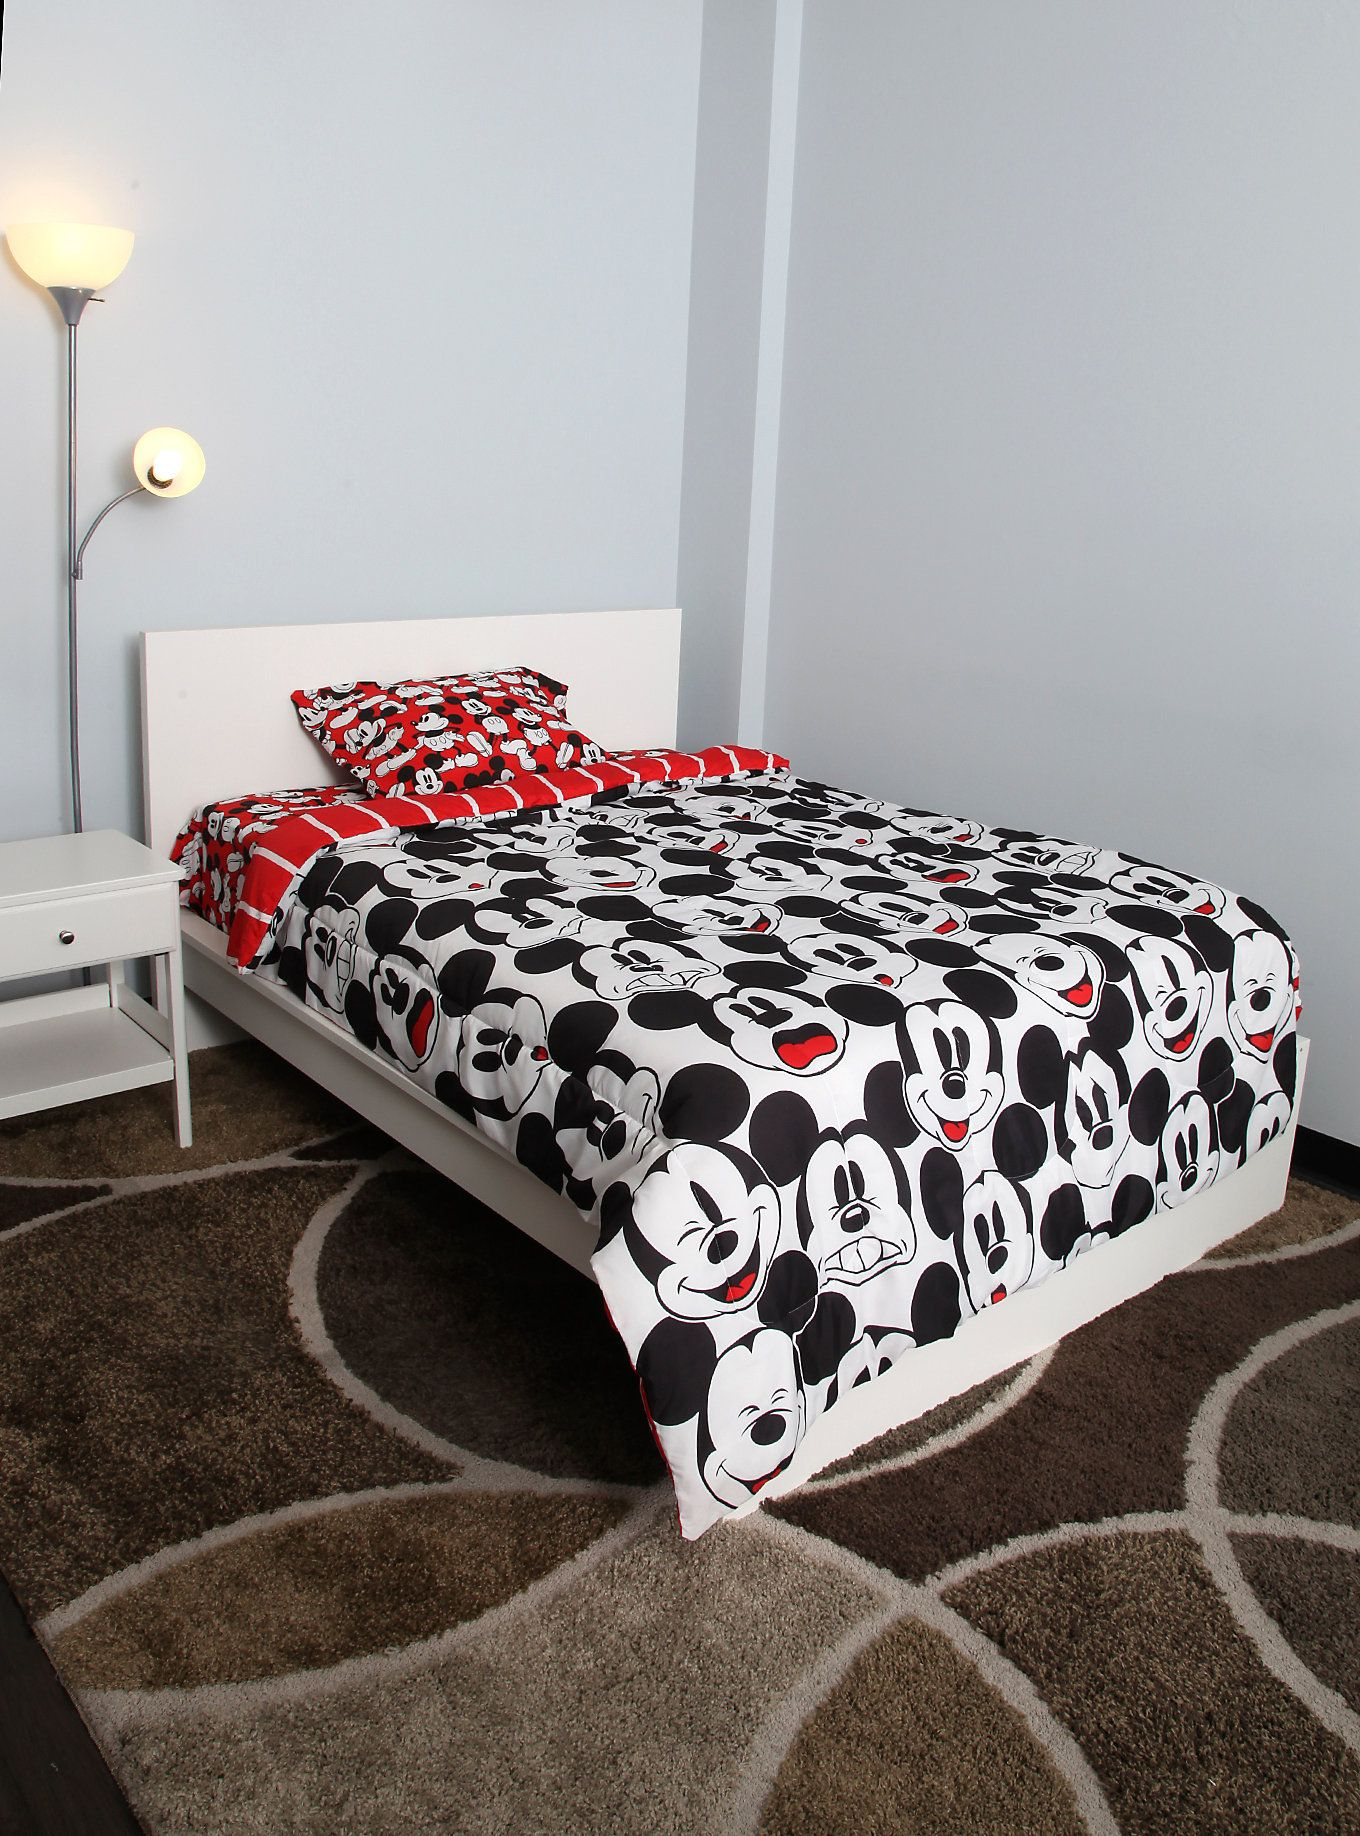 Cover your bed in Mickey and you'll both sleep happy. (via Hot Topic)